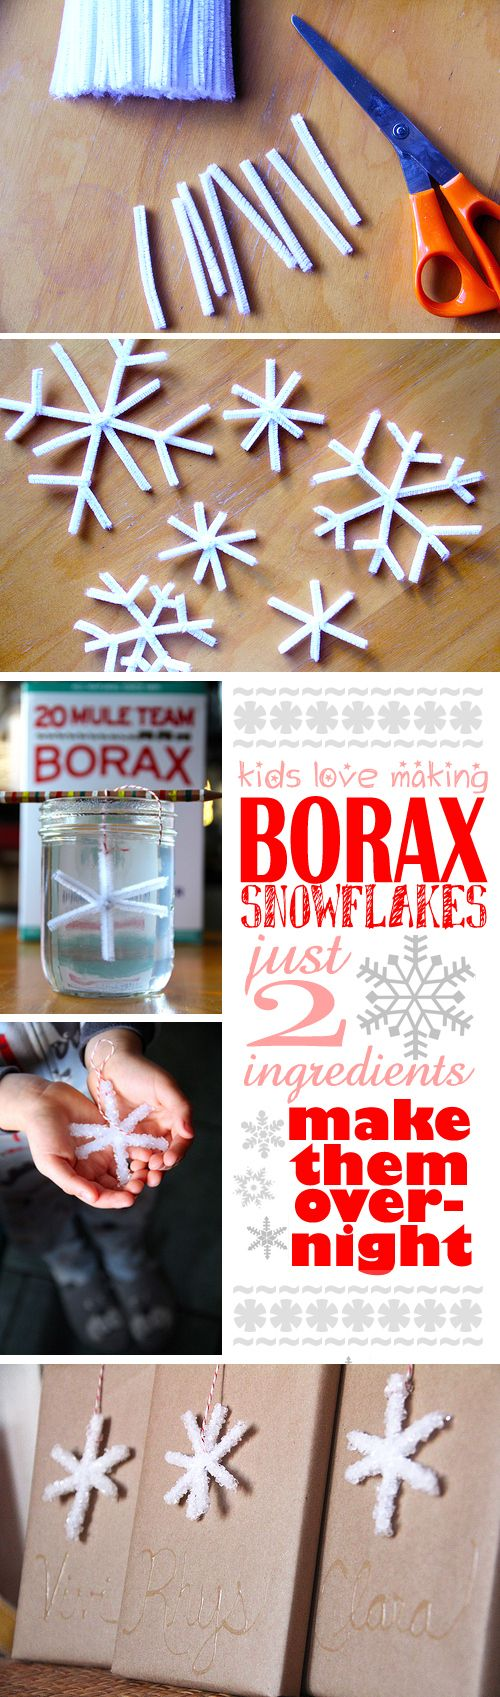 15 Awesome Snow Day Crafts For Kids - Giddy Upcycled